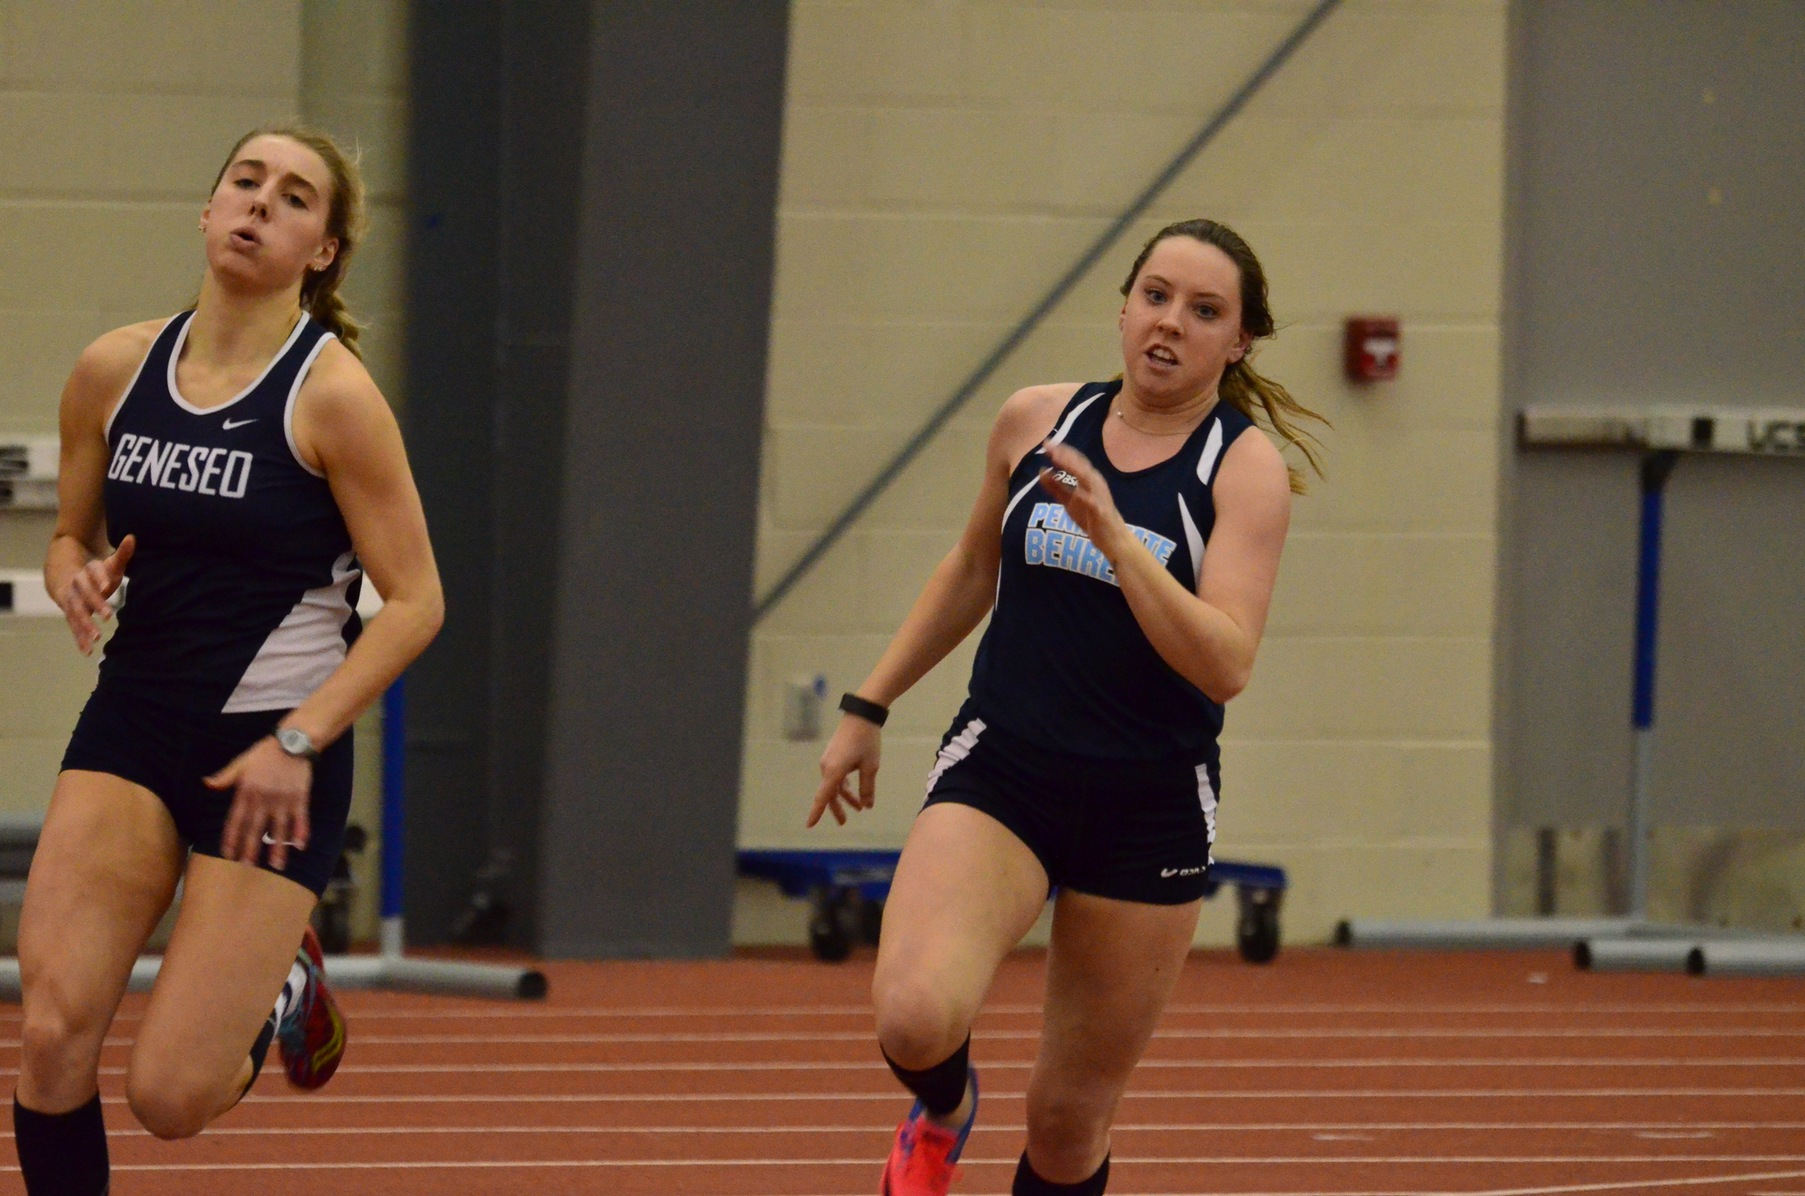 Women's Track and Field Finishes Houghton Invite